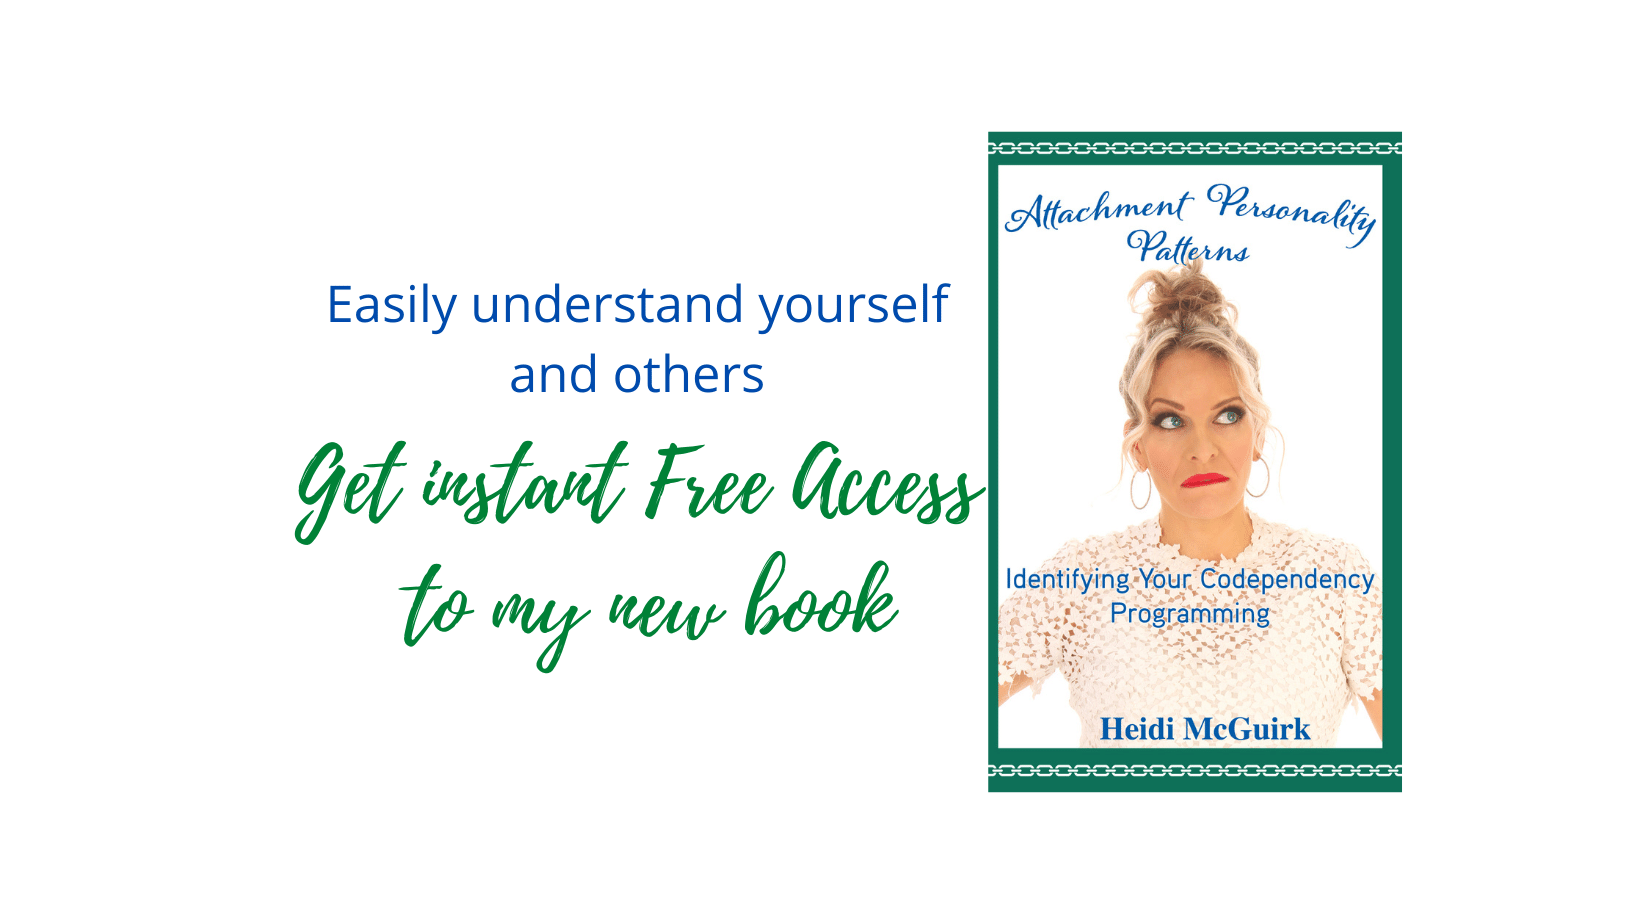 codependency book attachment personality patterns